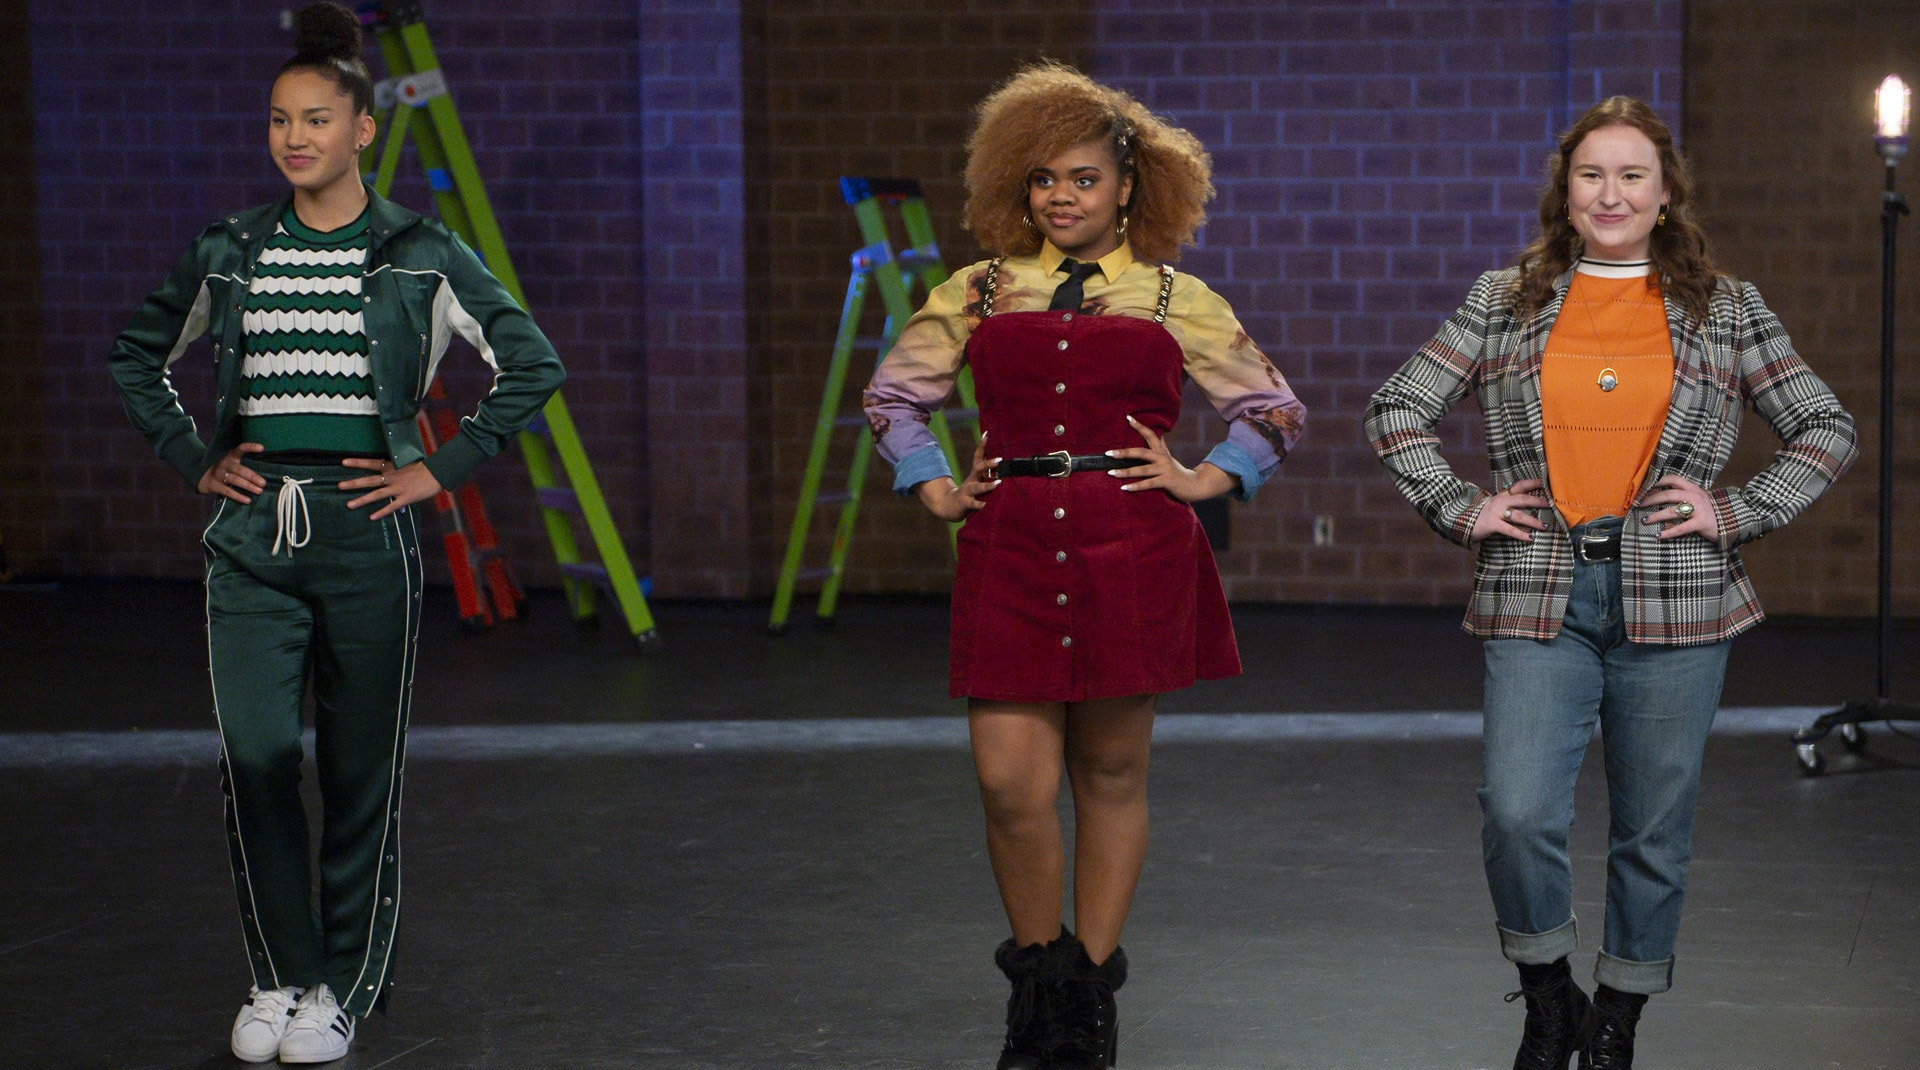 A still image from High School Musical: The Musical: The Series Season 2